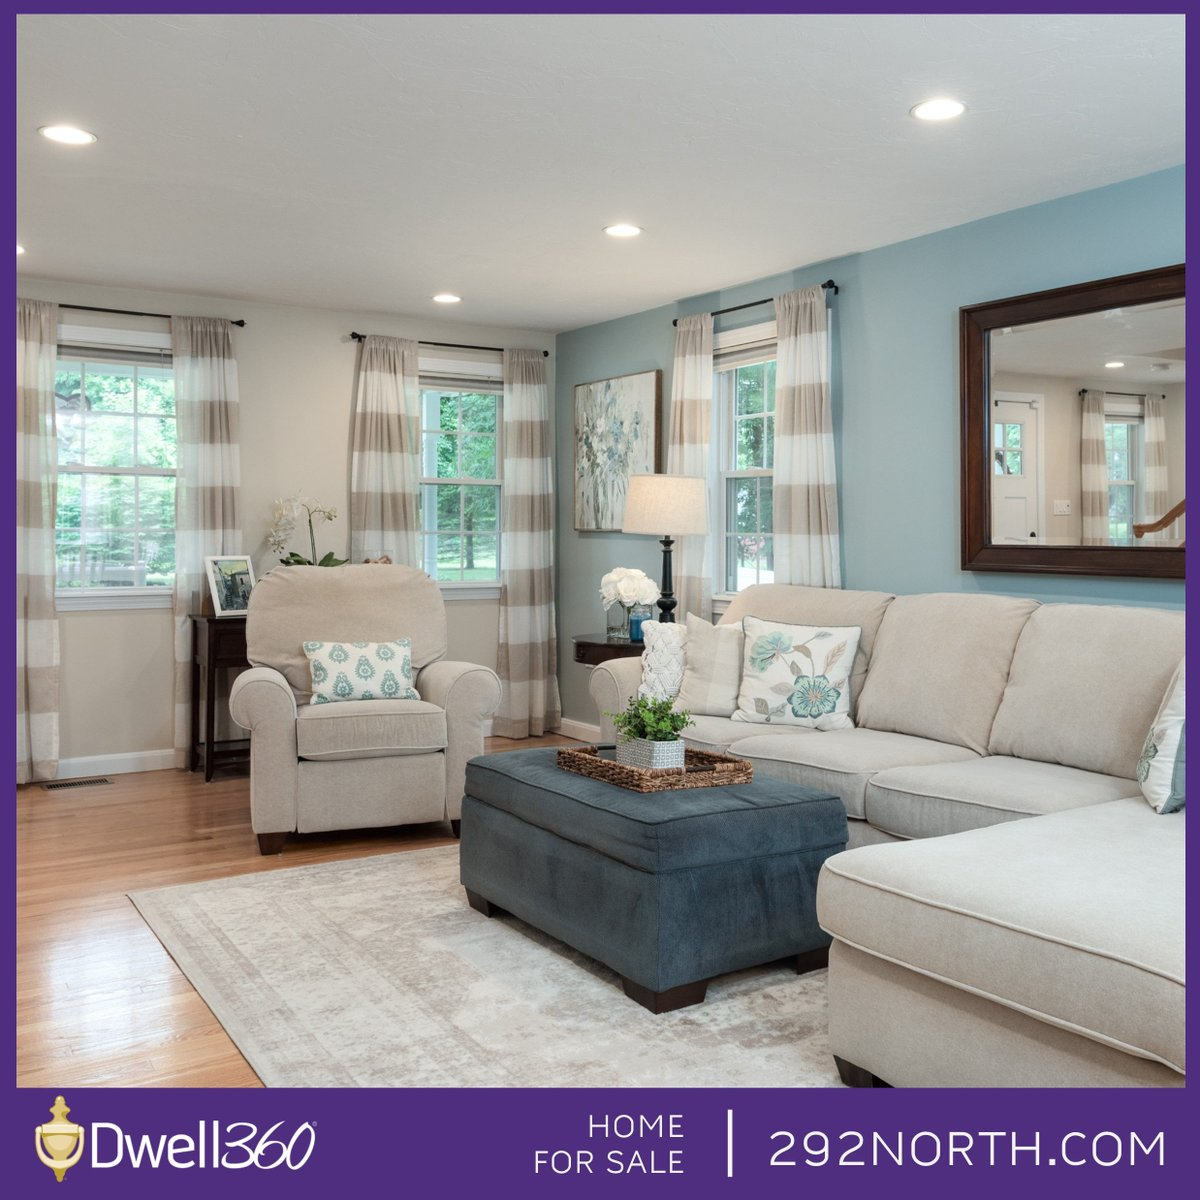 Open House! This Walpole home really look this perfect in person! Stop by an open house Saturday & Sunday 12:00 - 2:00. http://292north.com/  #housegoals #openhouse #dwell360 #realestate #walpole #homeforsale #houseforsale #interiordecor #LivingRoom #designinspirationpic.twitter.com/4WZNAMypIo